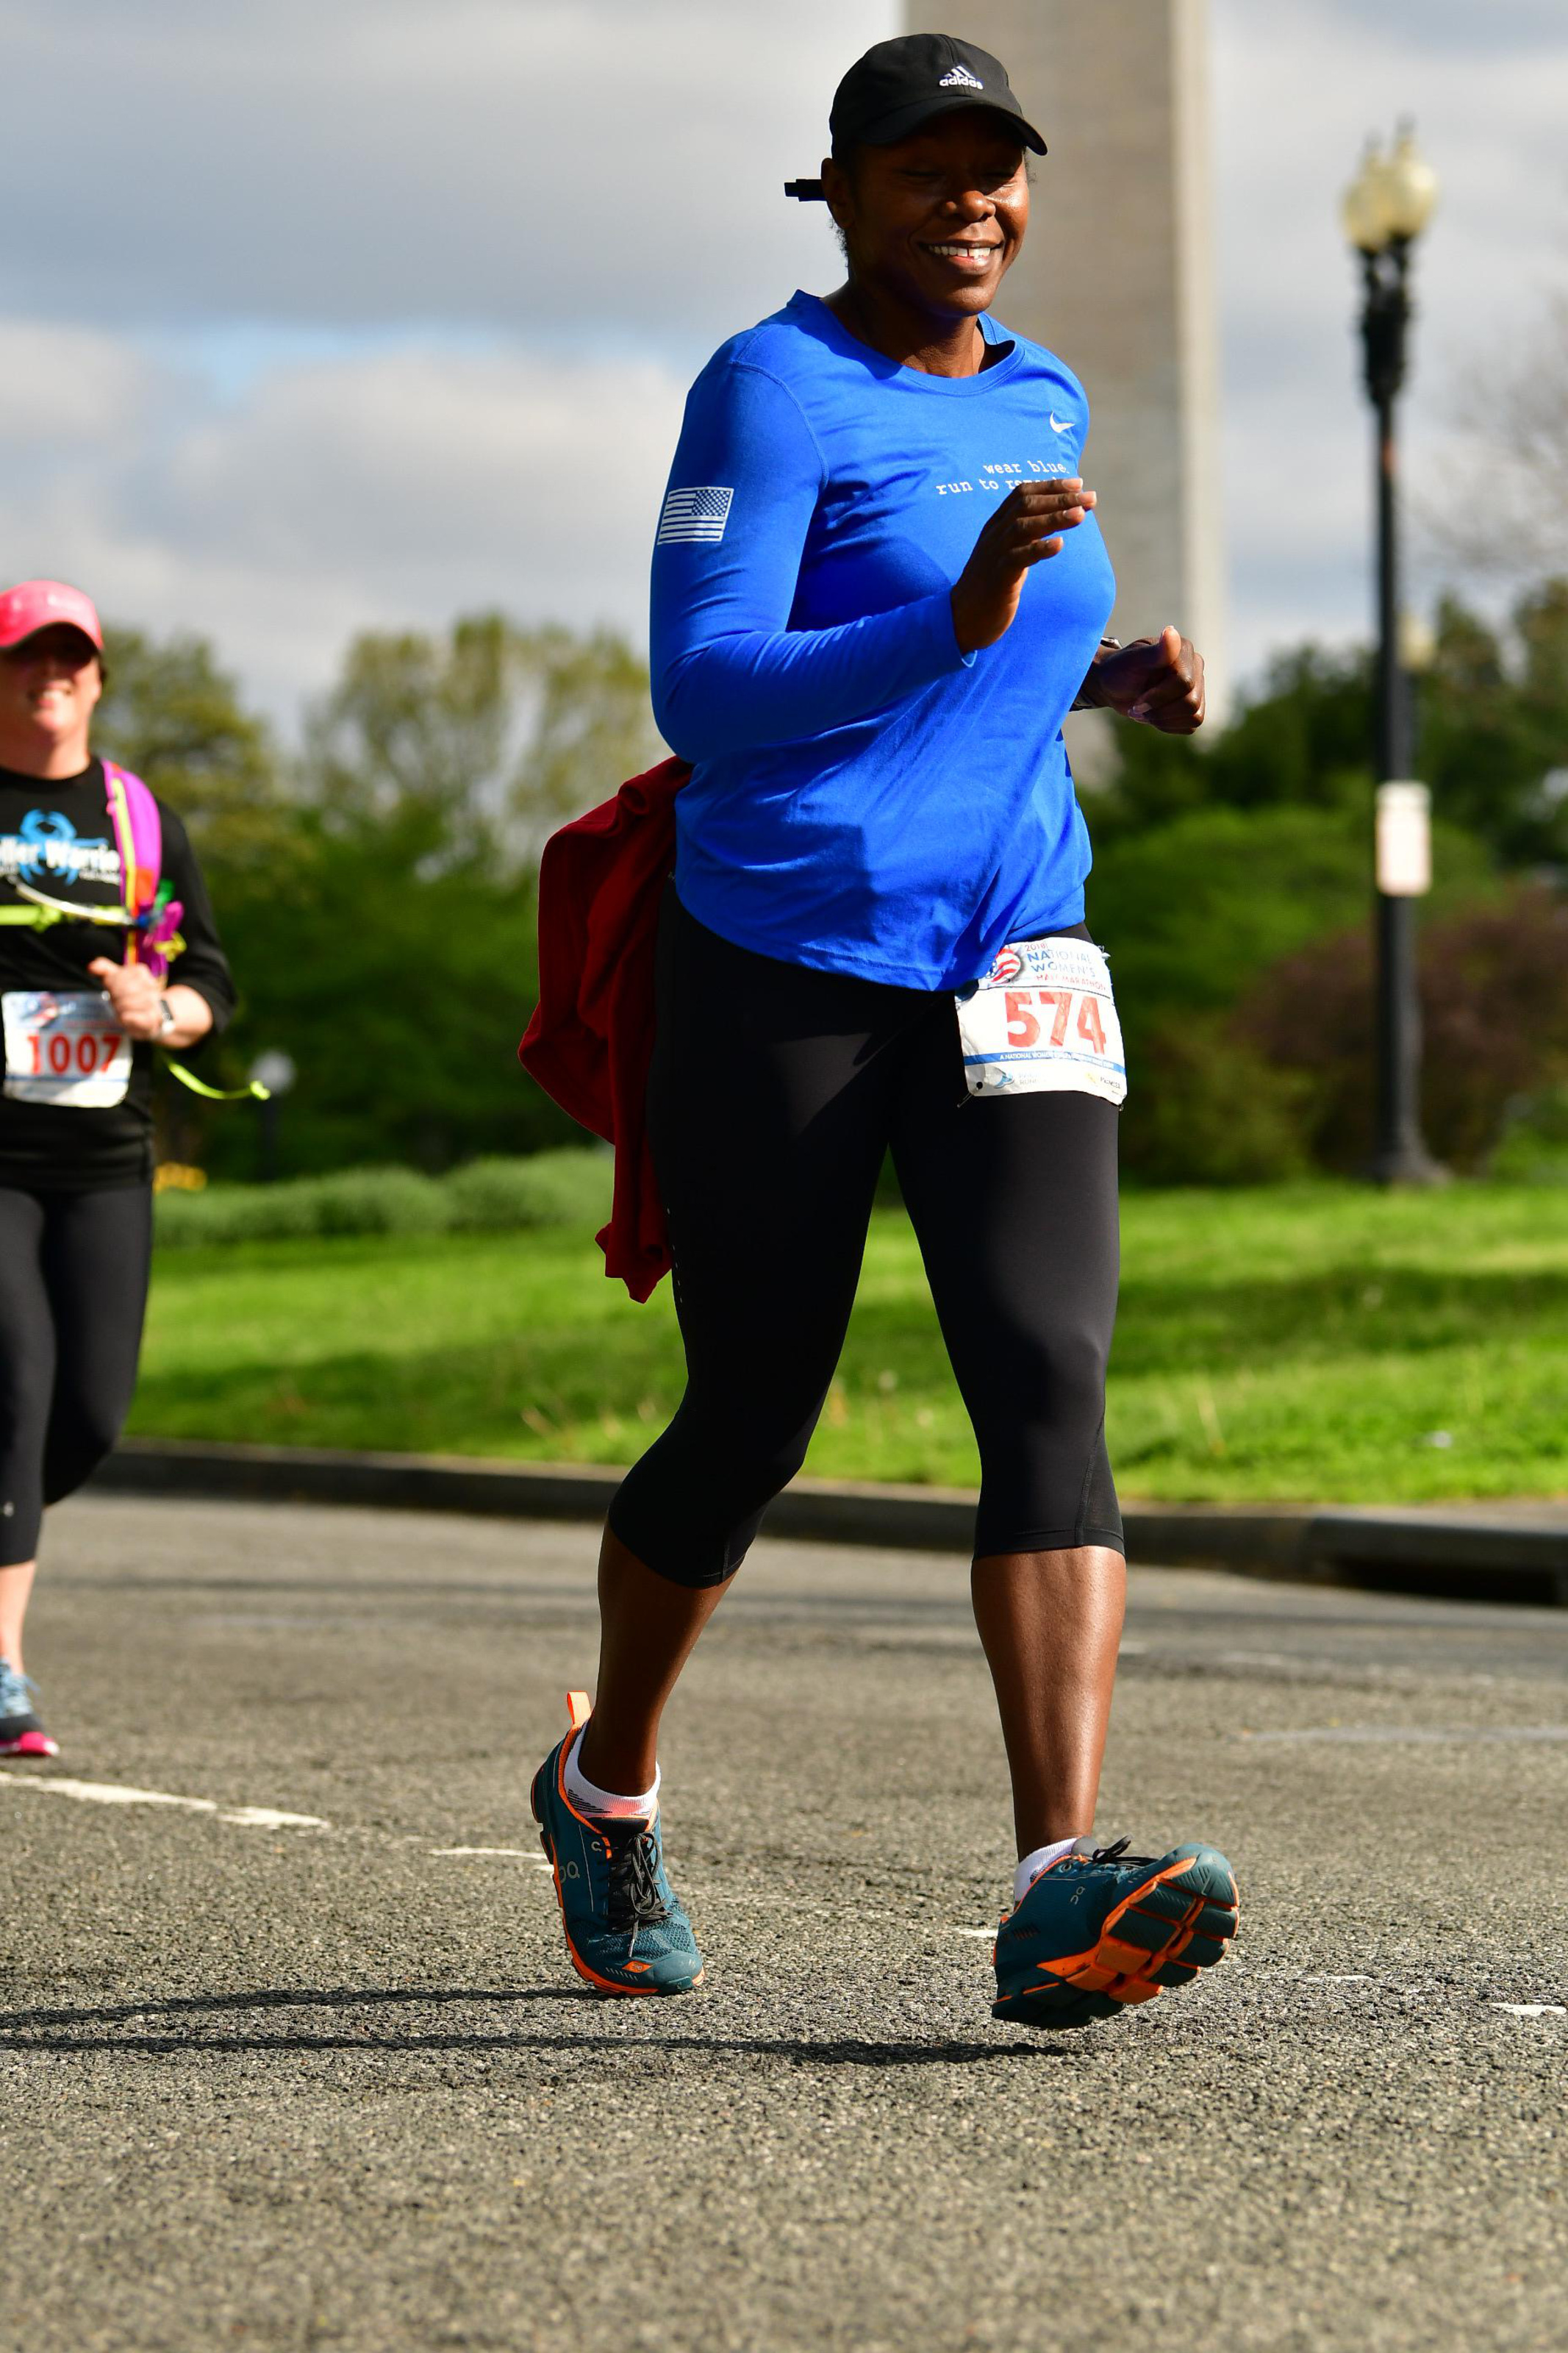 2018 National Women's Half Marathon